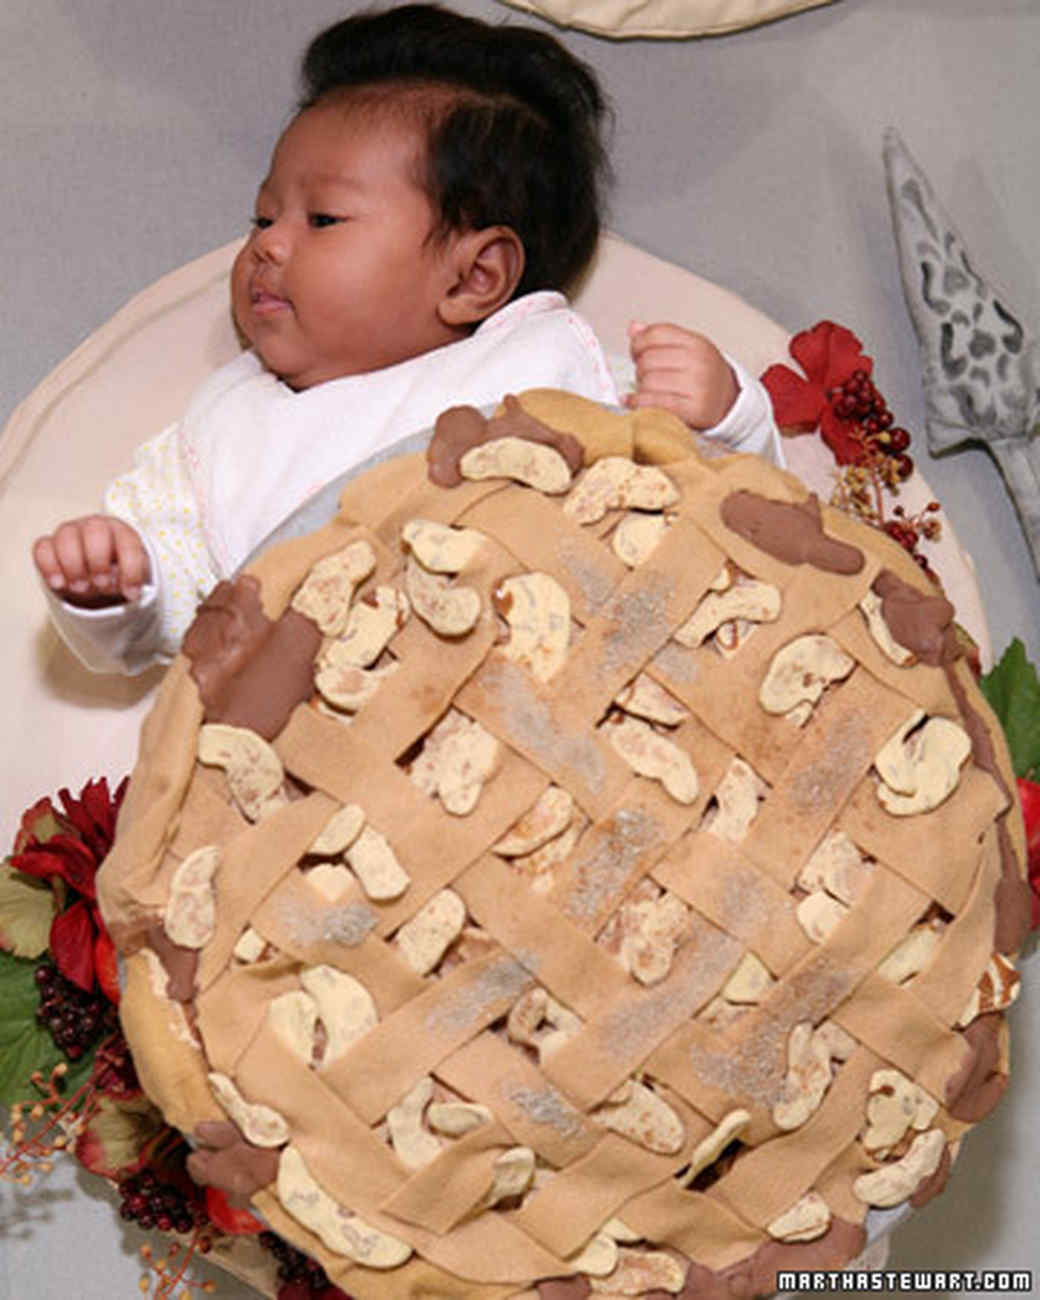 Halloween Baby Costume: Pie